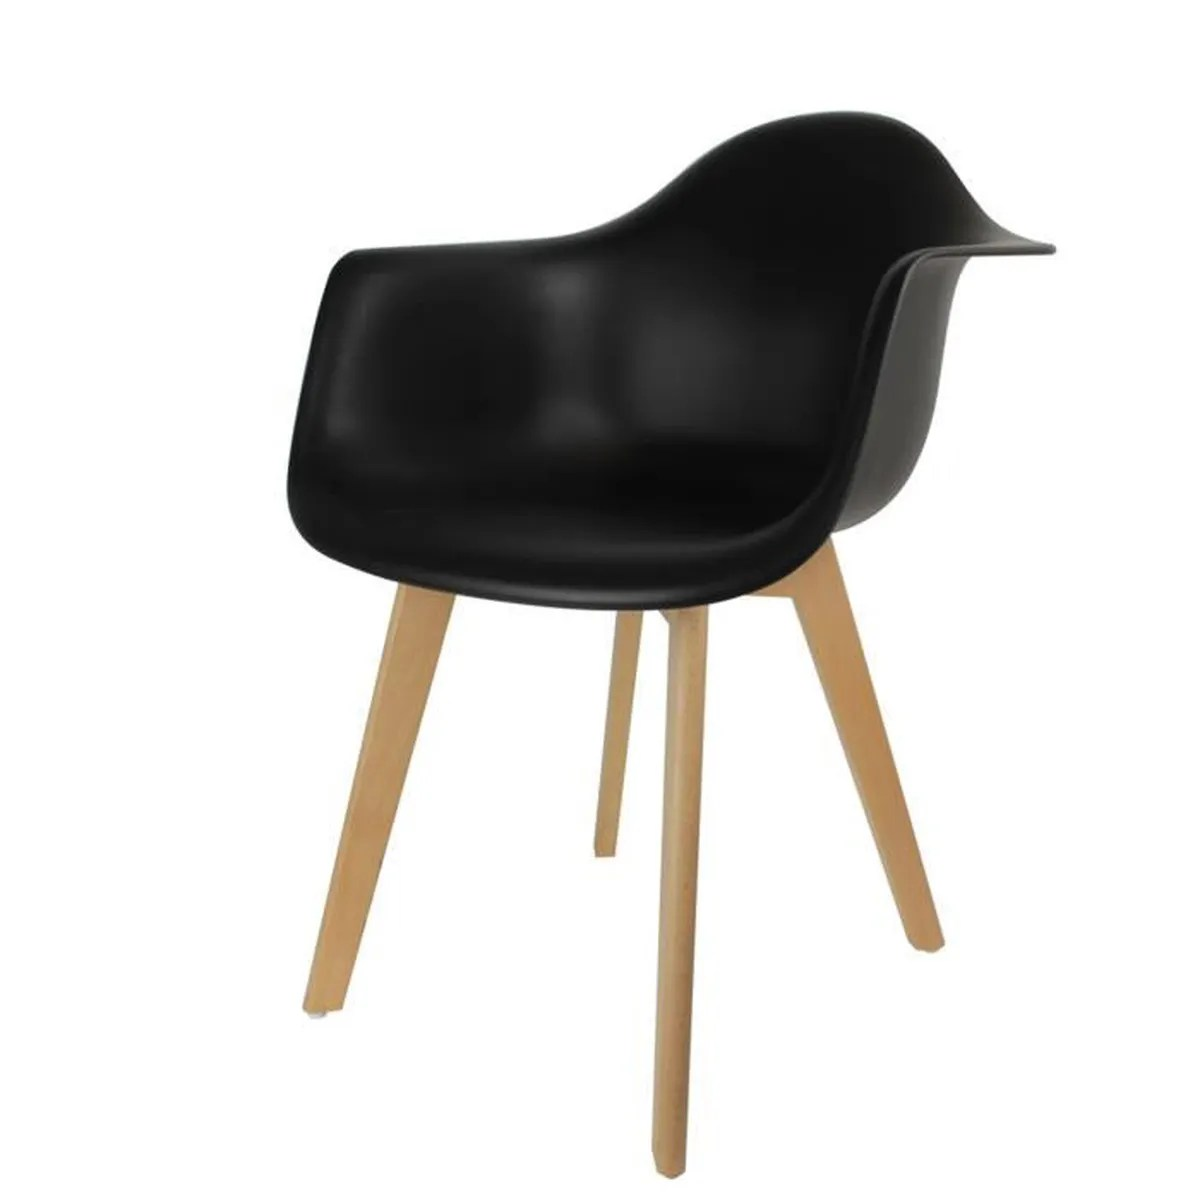 Achat Mobilier Mobilier Scandinave Achat Vente Mobilier Scandinave